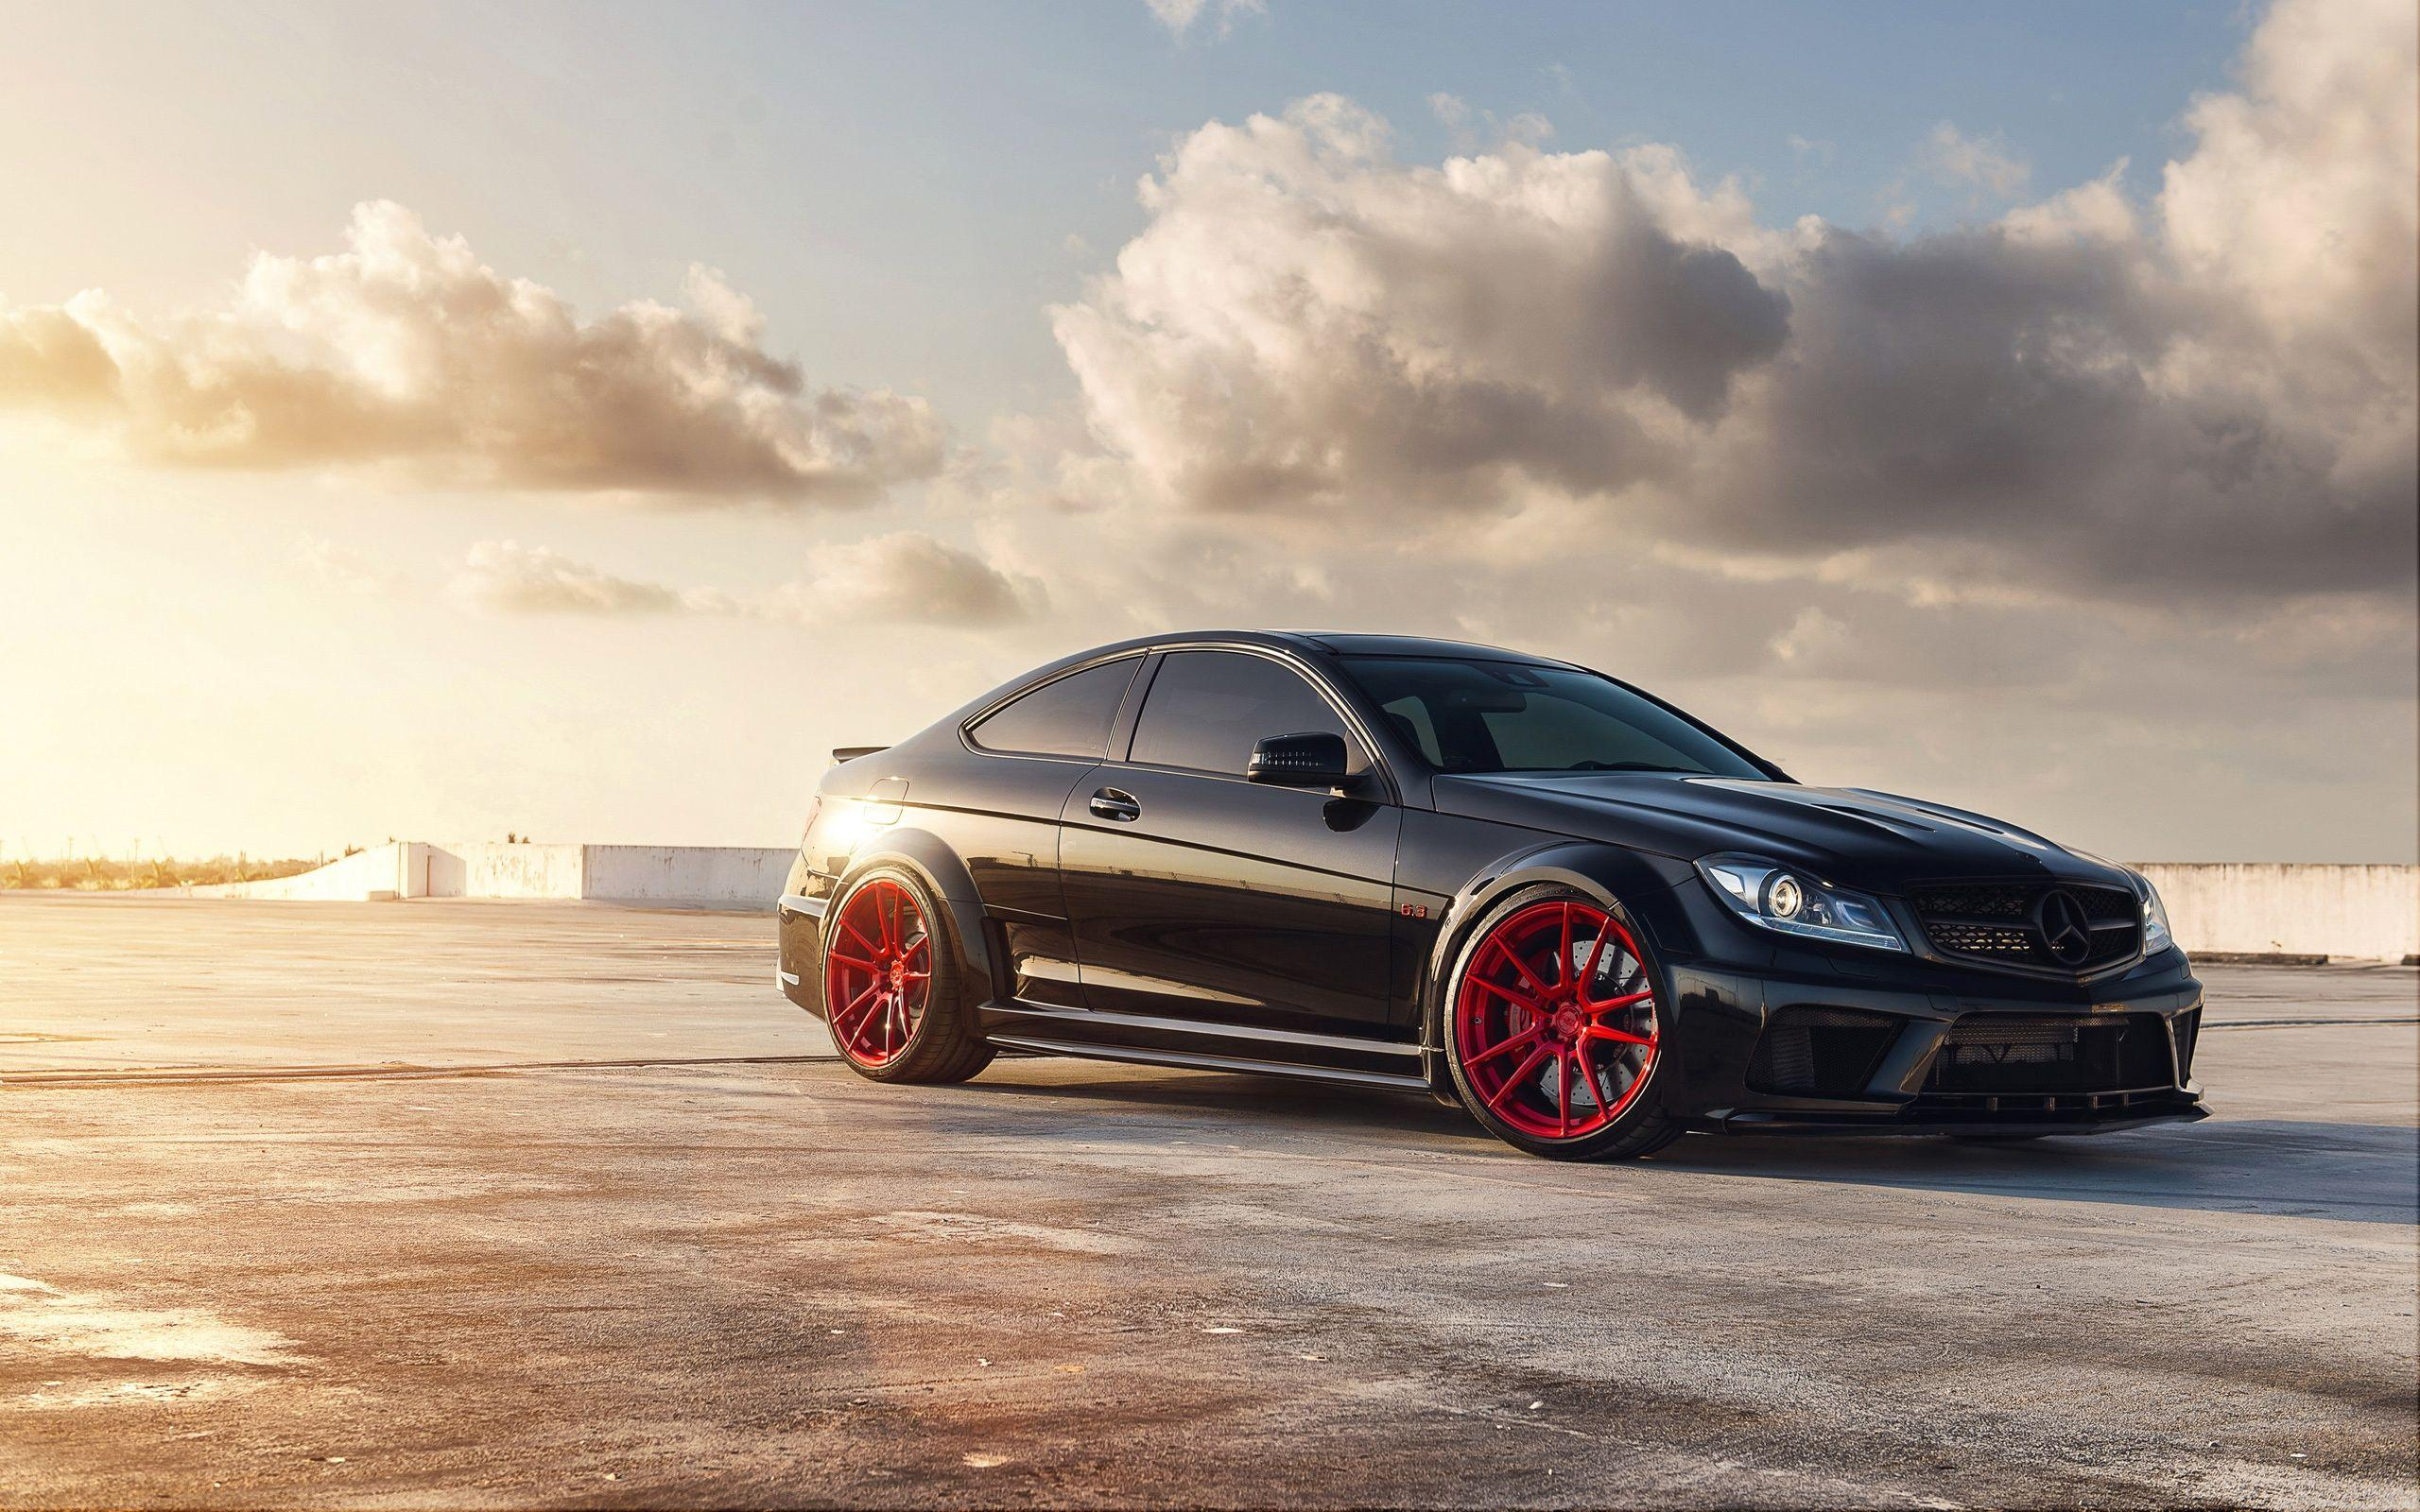 Mercedes Benz C63 AMG Wallpapers | HD Wallpapers